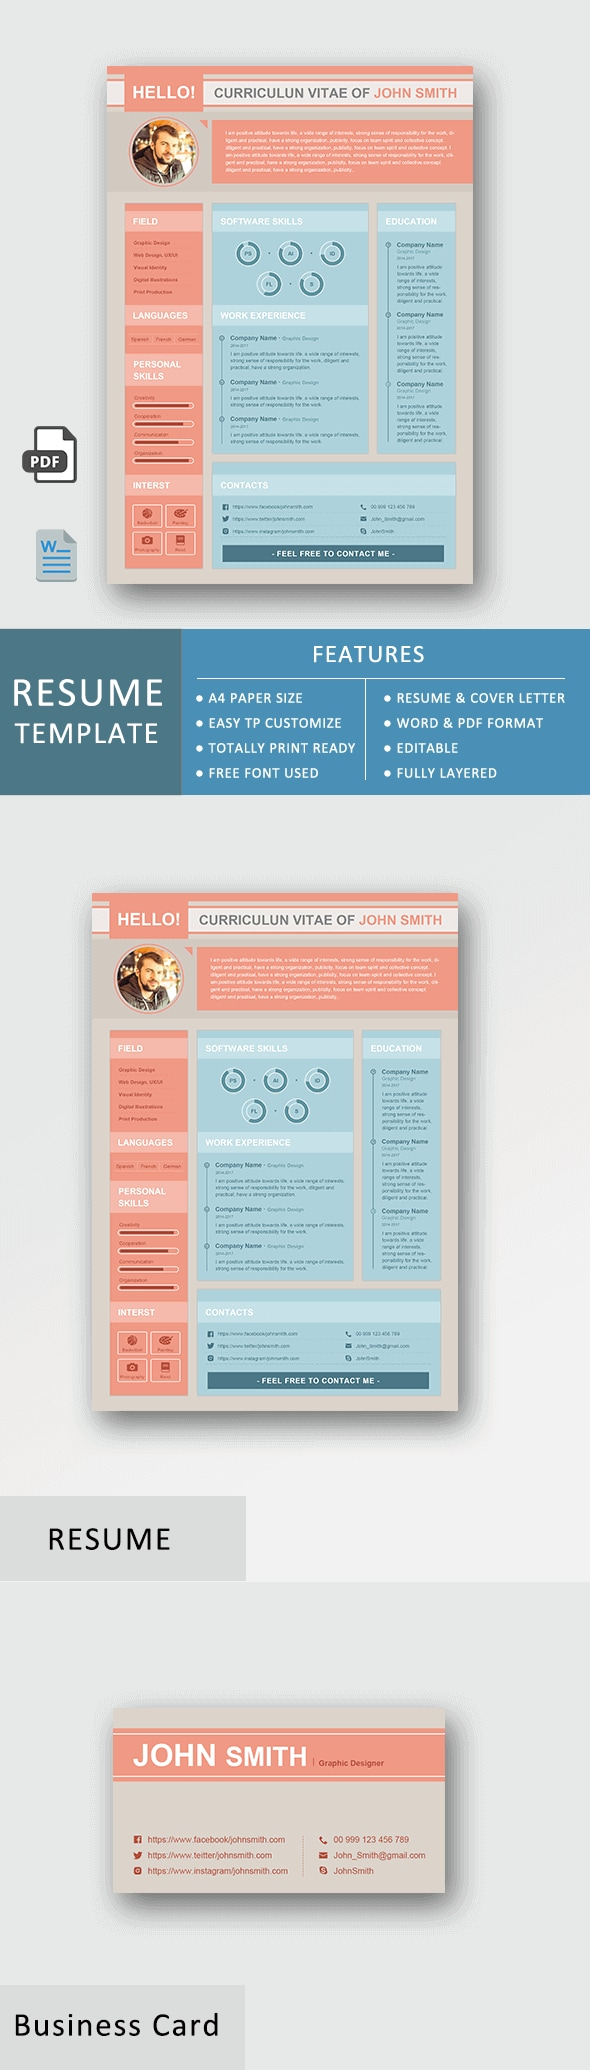 Resume Template - Business Set Basic